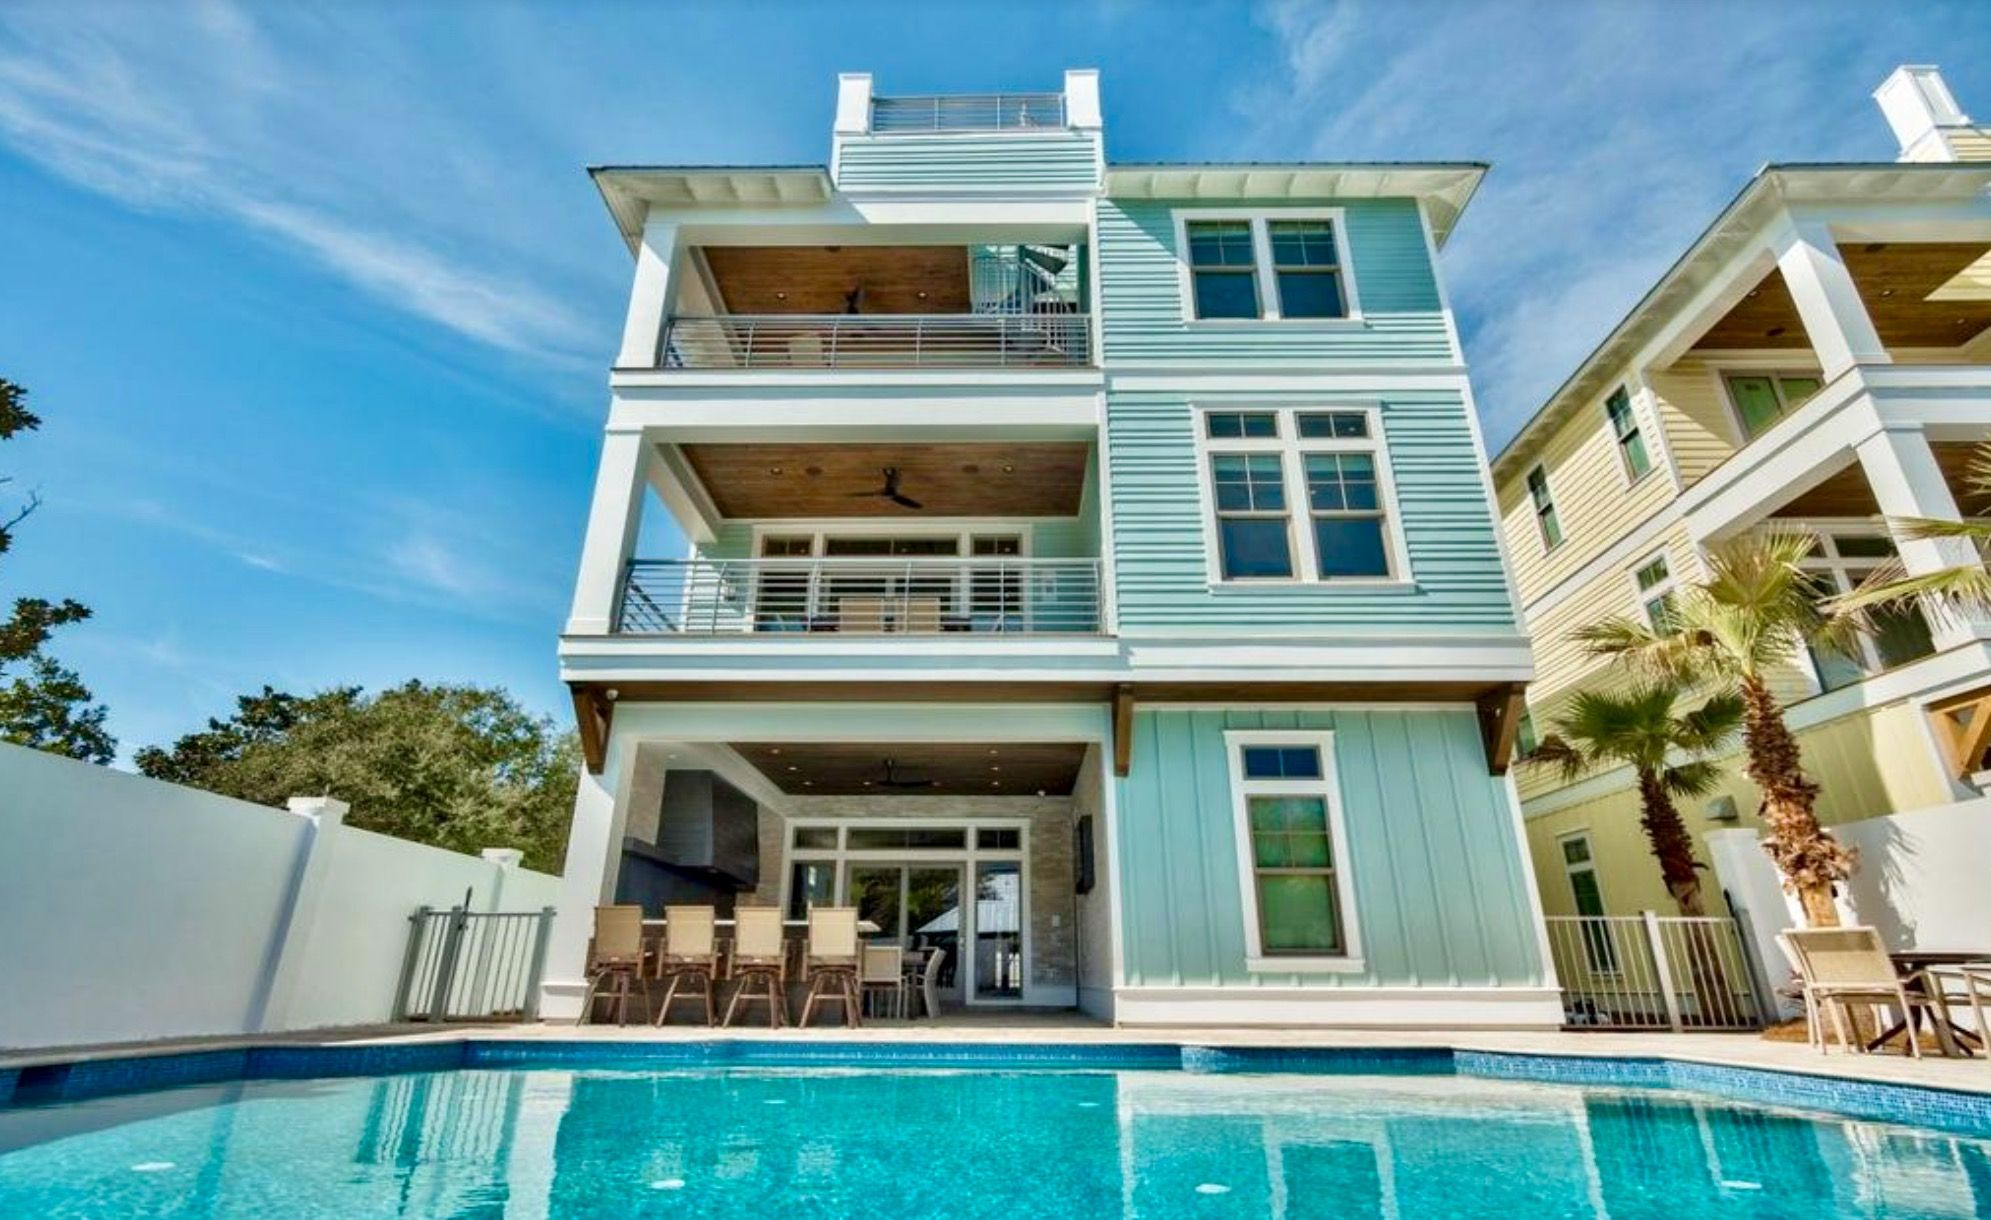 Rental House Destin Florida The Only Place For Summer Vacation